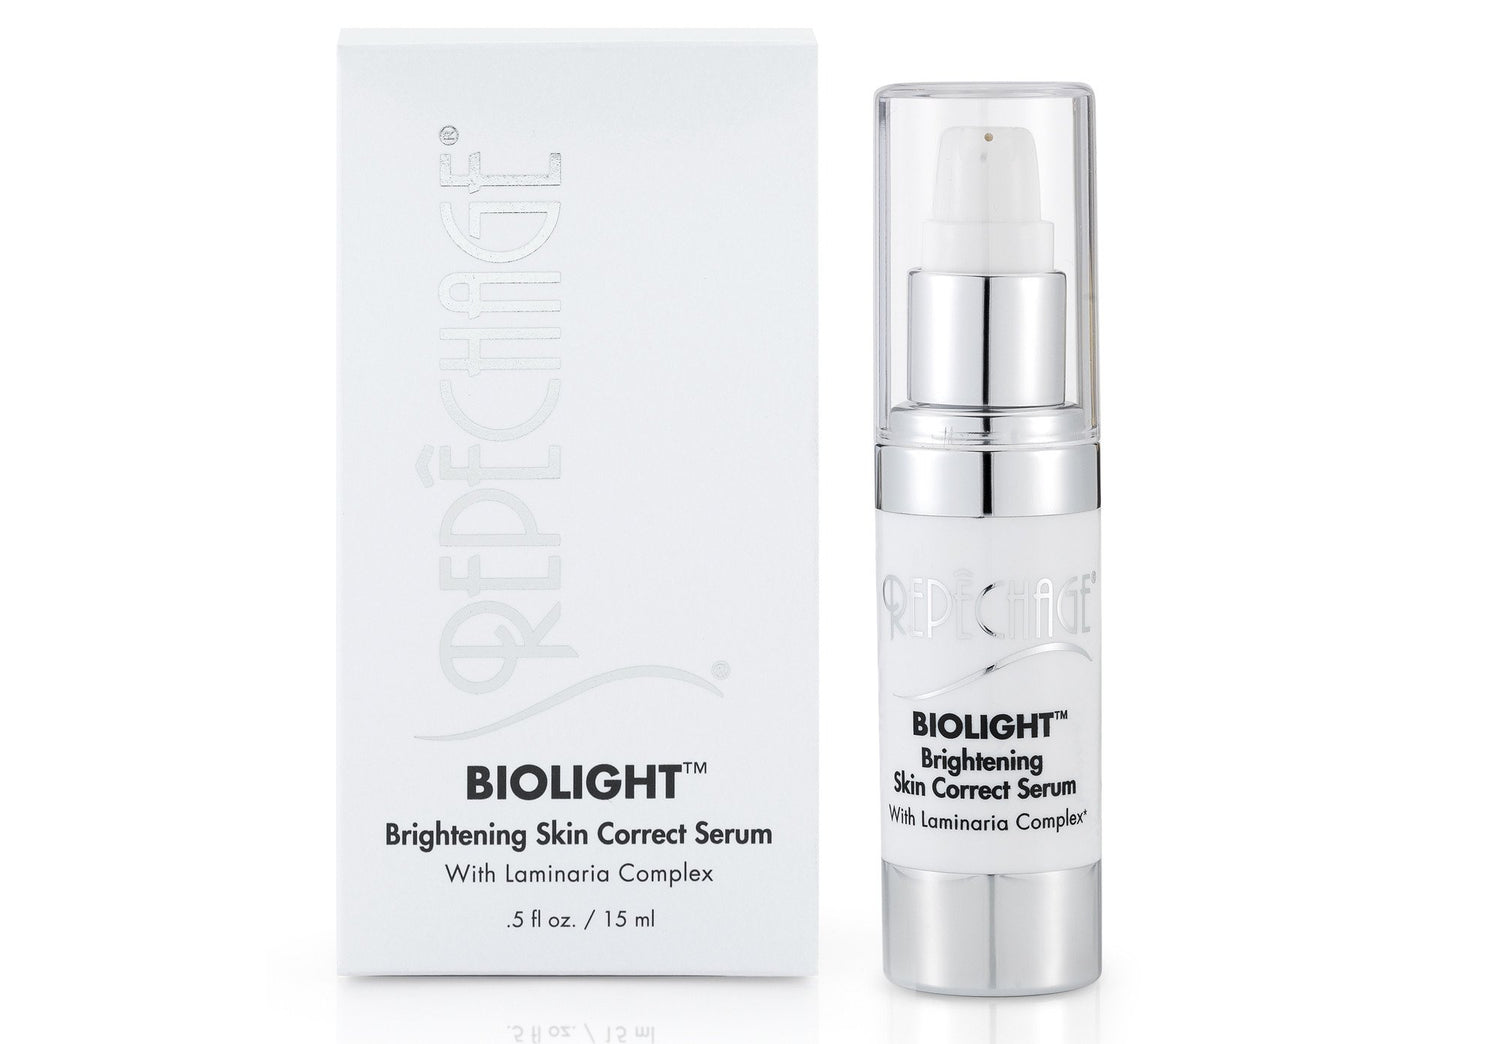 BIOLIGHT™ Brightening Skin Correct Serum With Laminaria Complex